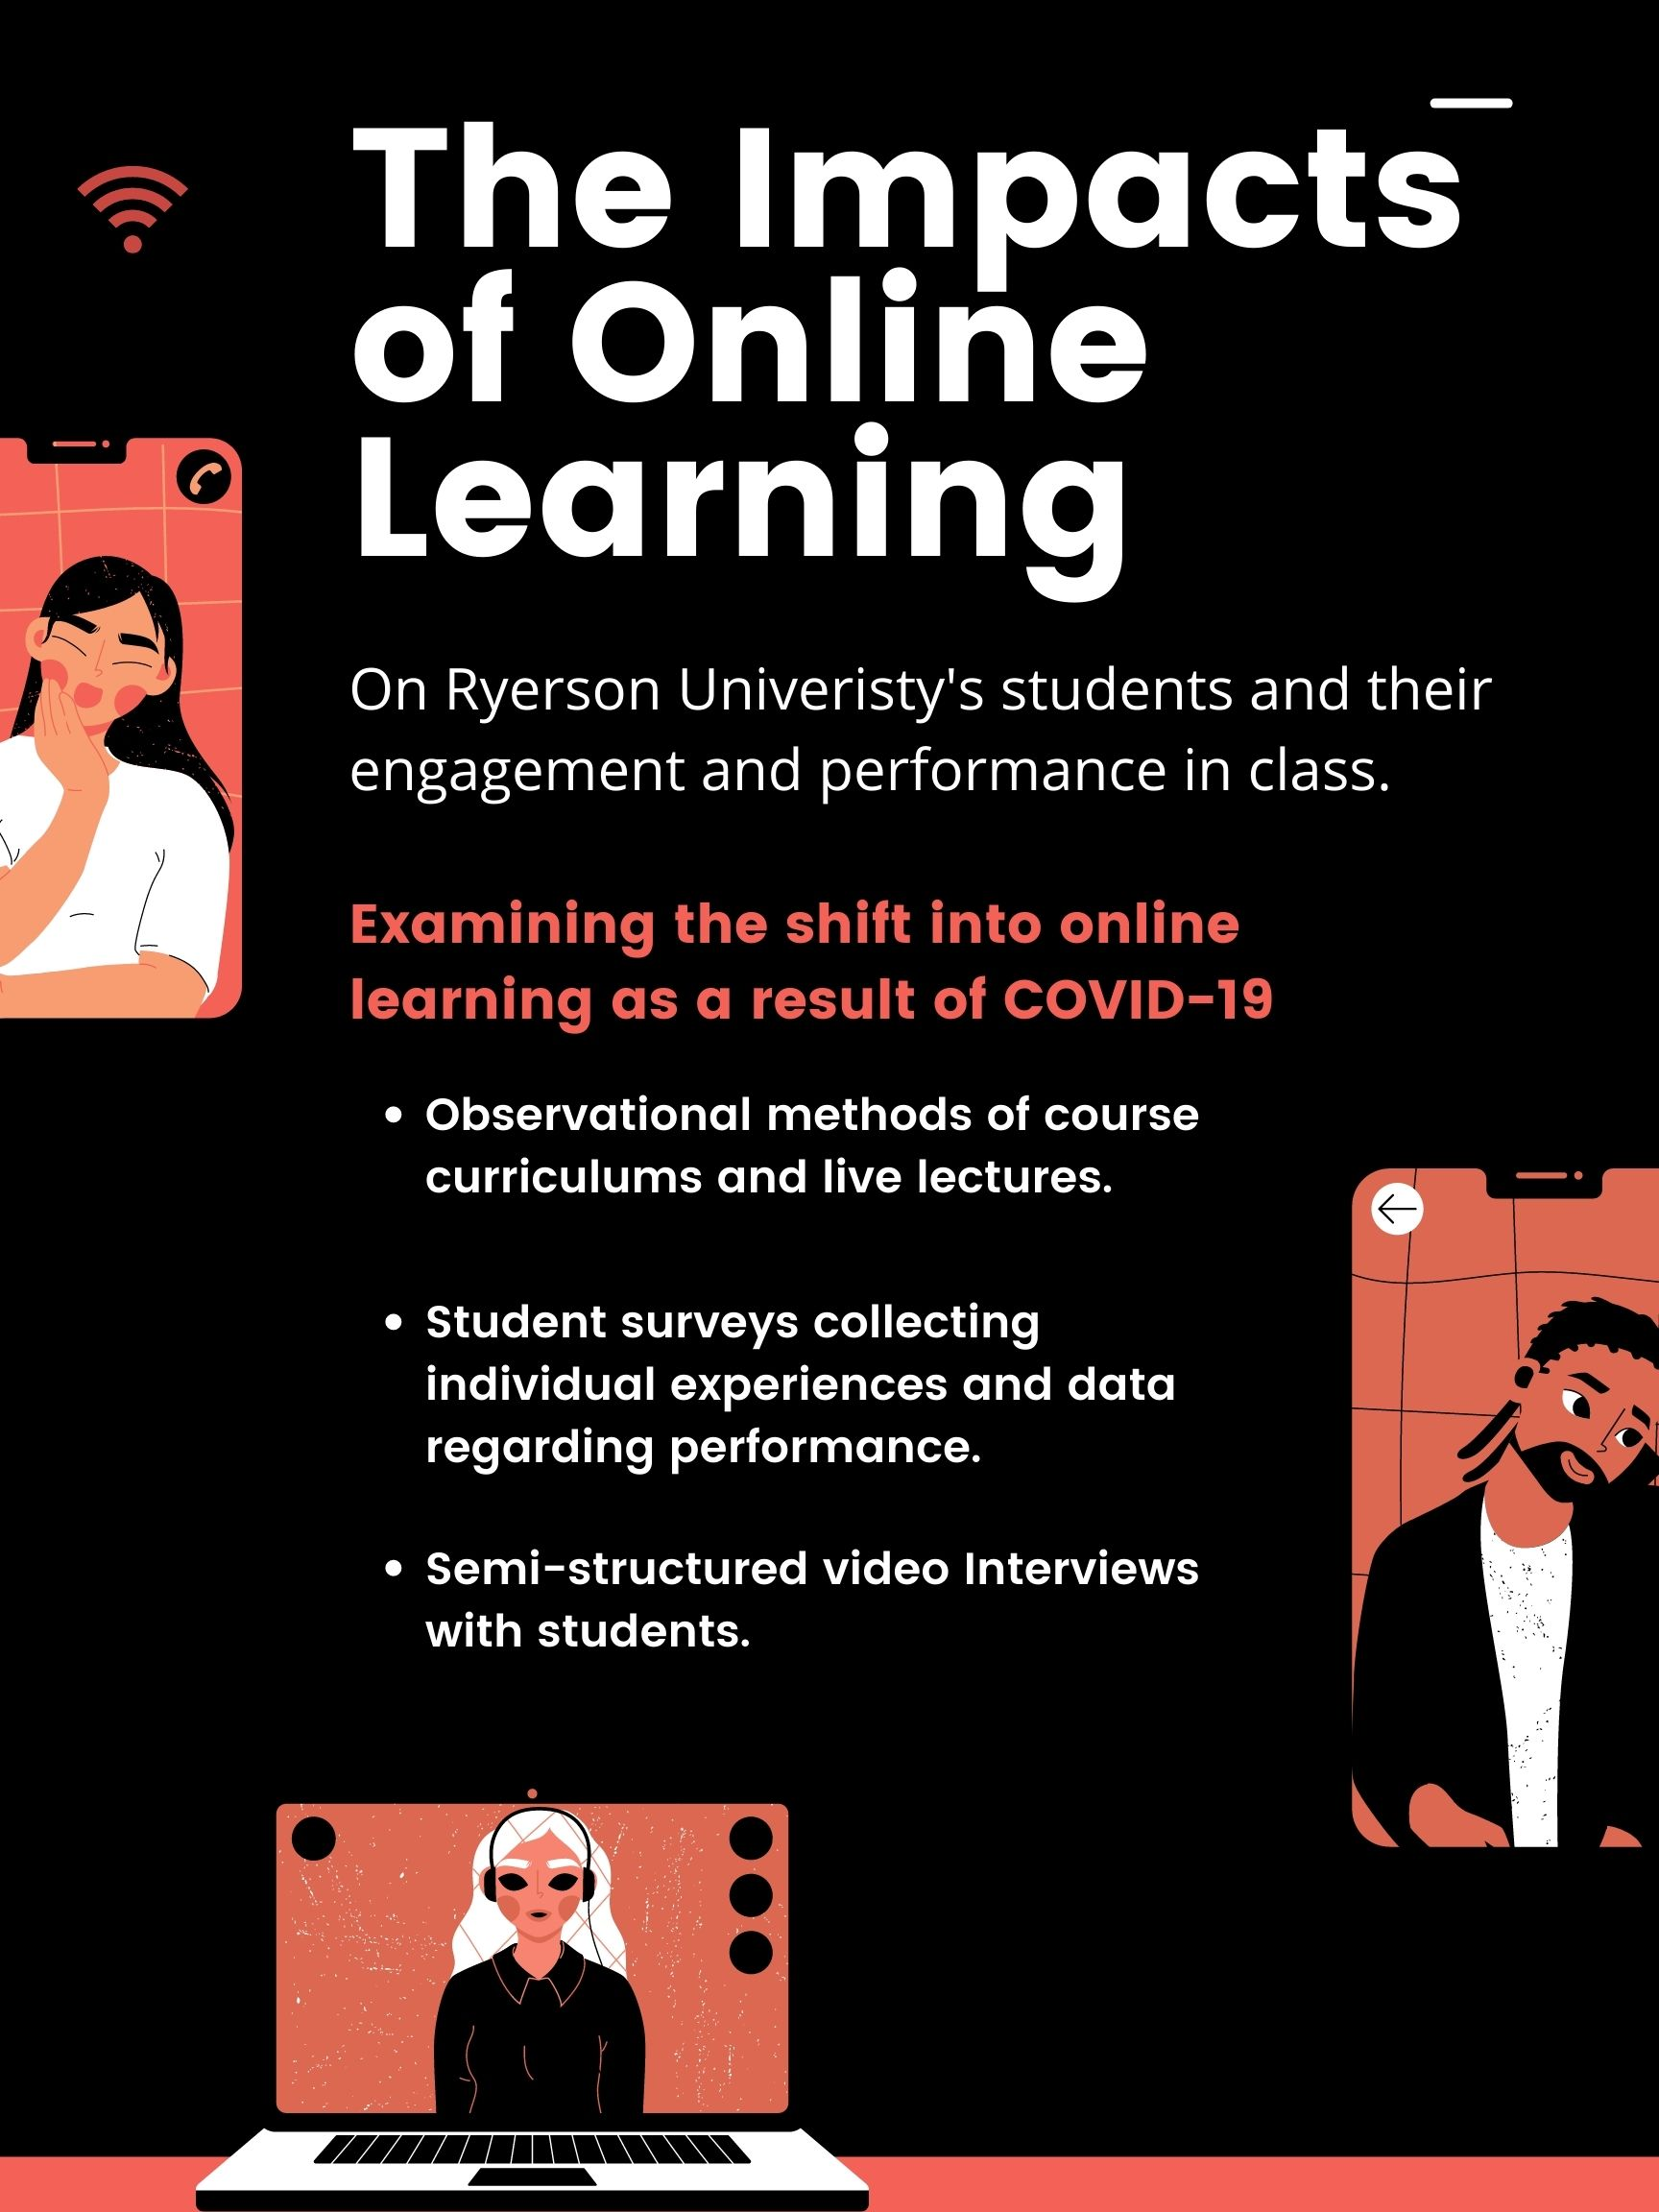 The Impacts of Online Learning on Student Engagement and Performance